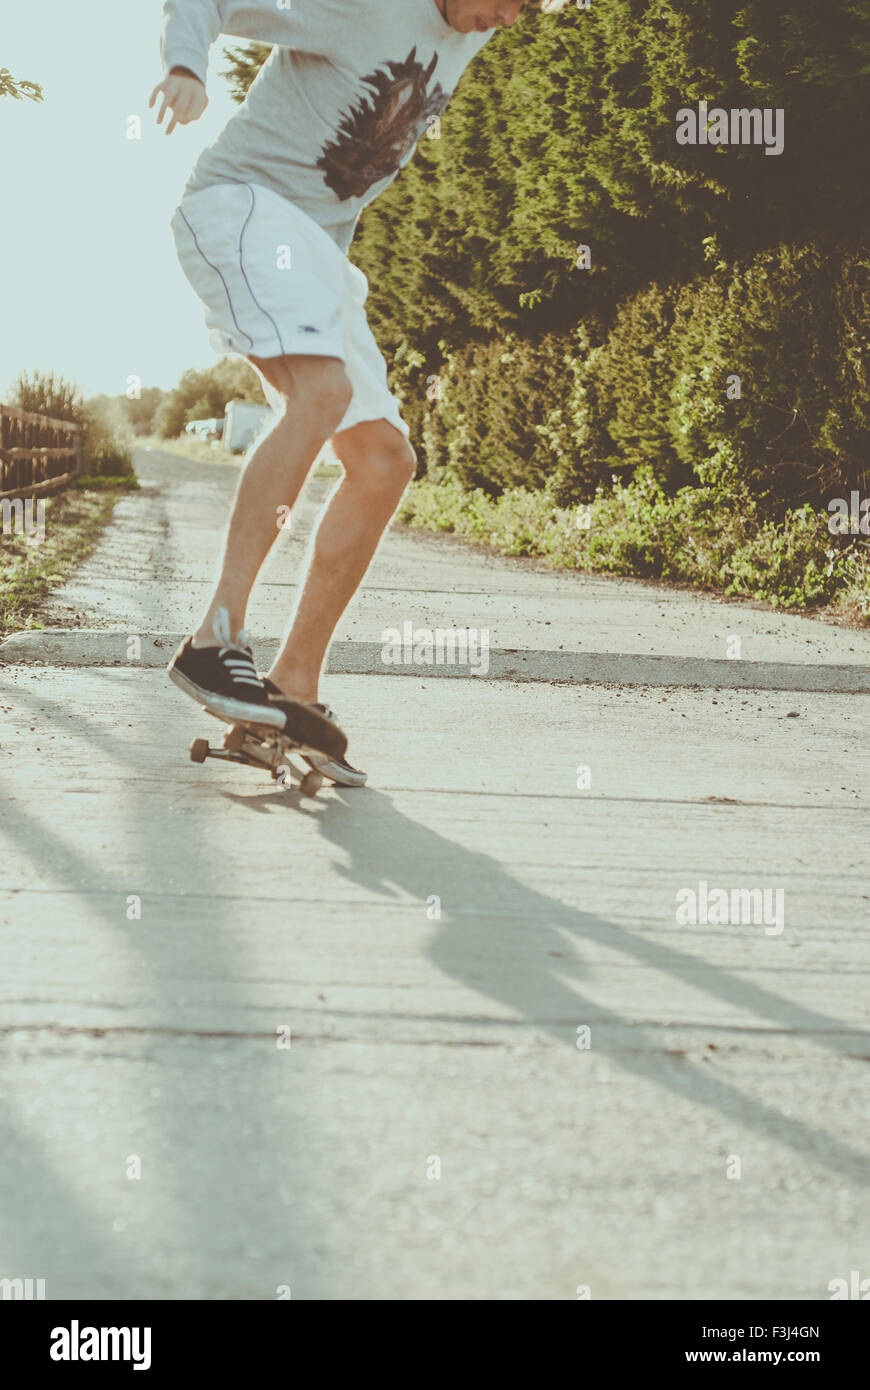 Young man skateboarding in the summer - Stock Image